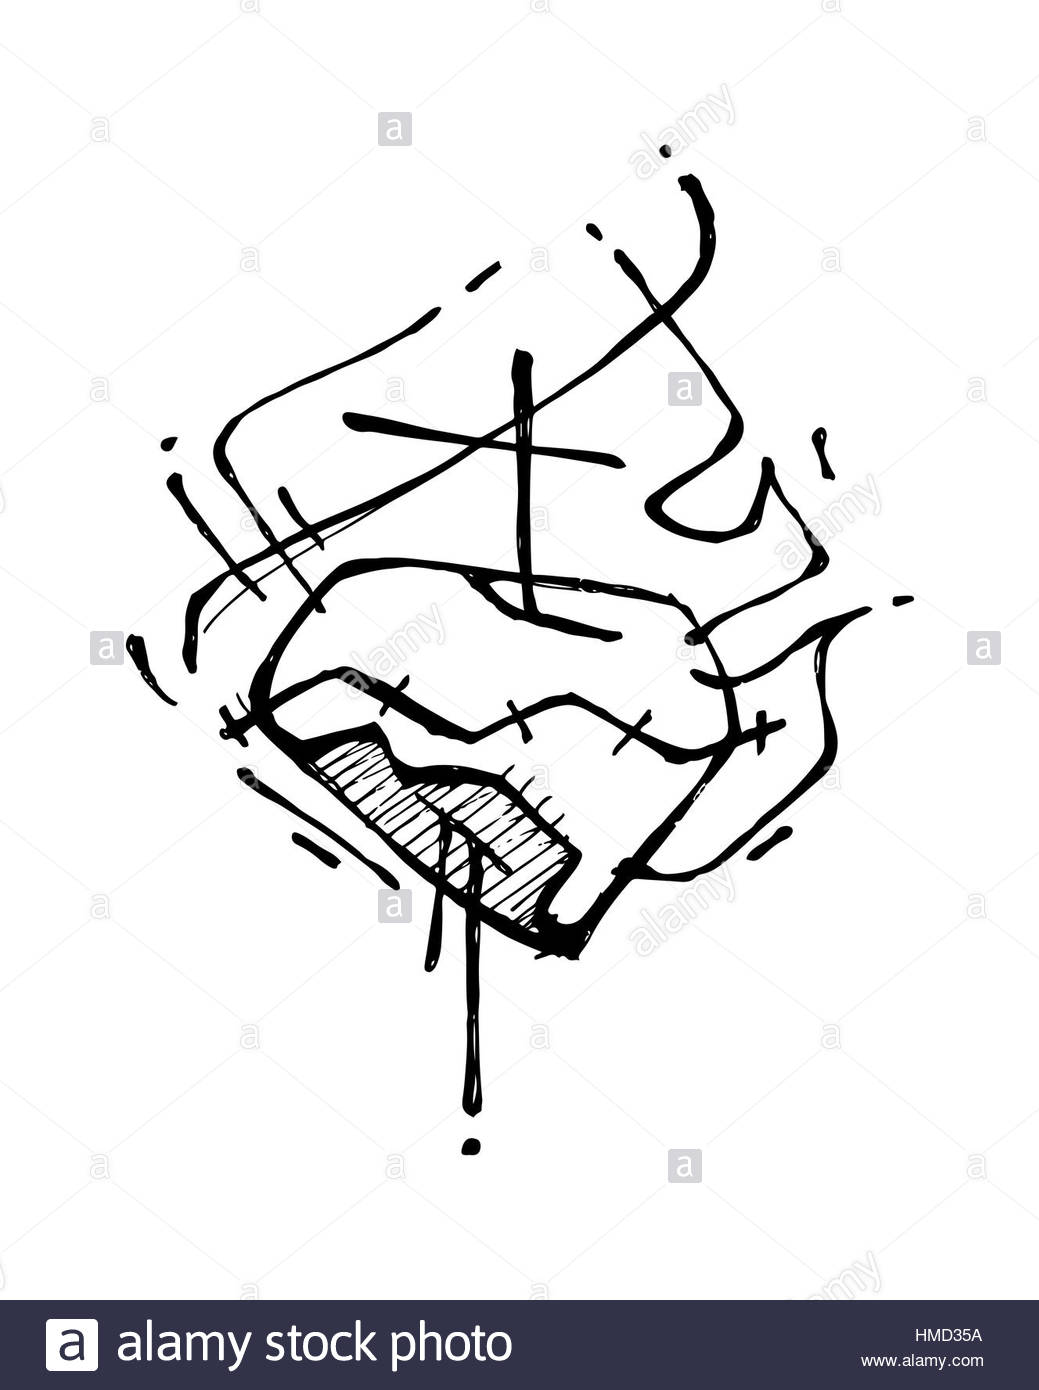 Heart diagram drawing at getdrawings free for personal use 1039x1390 hand drawn vector illustration or drawing of jesus christ sacred ccuart Choice Image